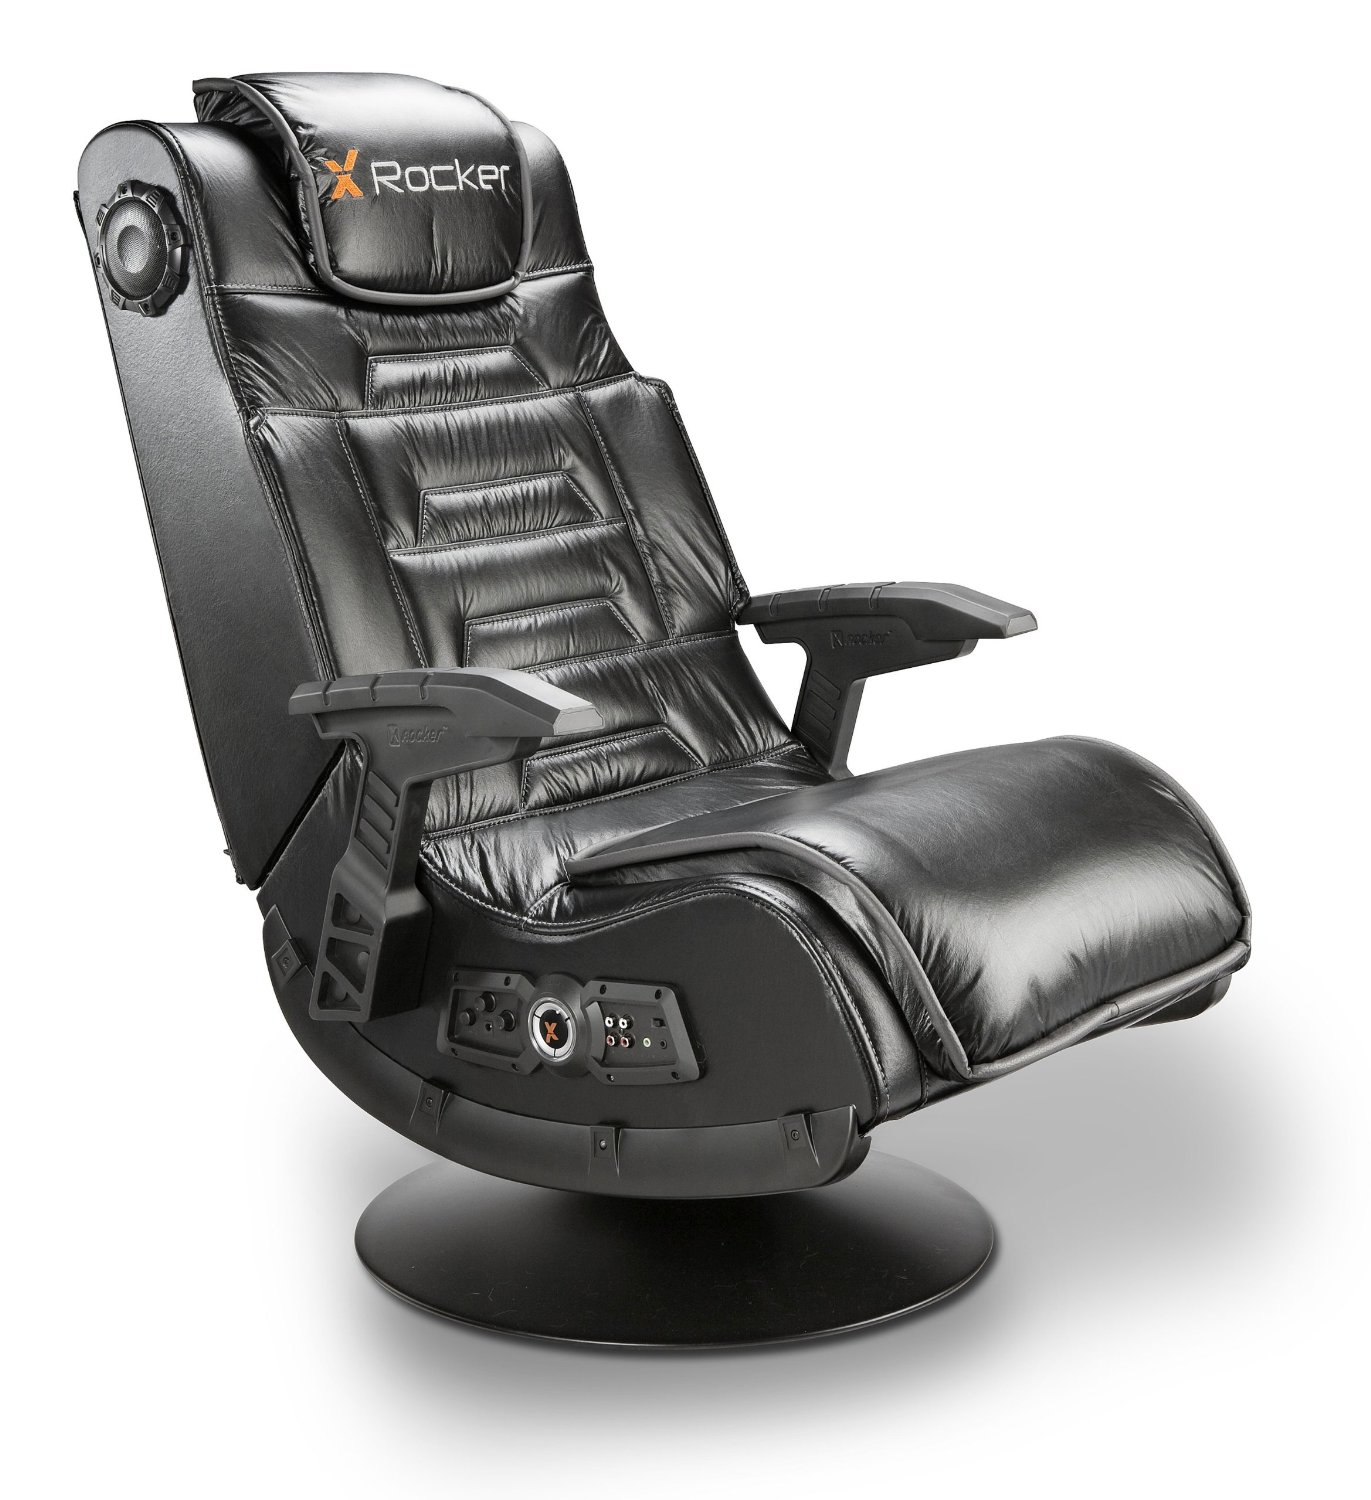 Delightful What Are The Best Gaming Chairs With Speakers?